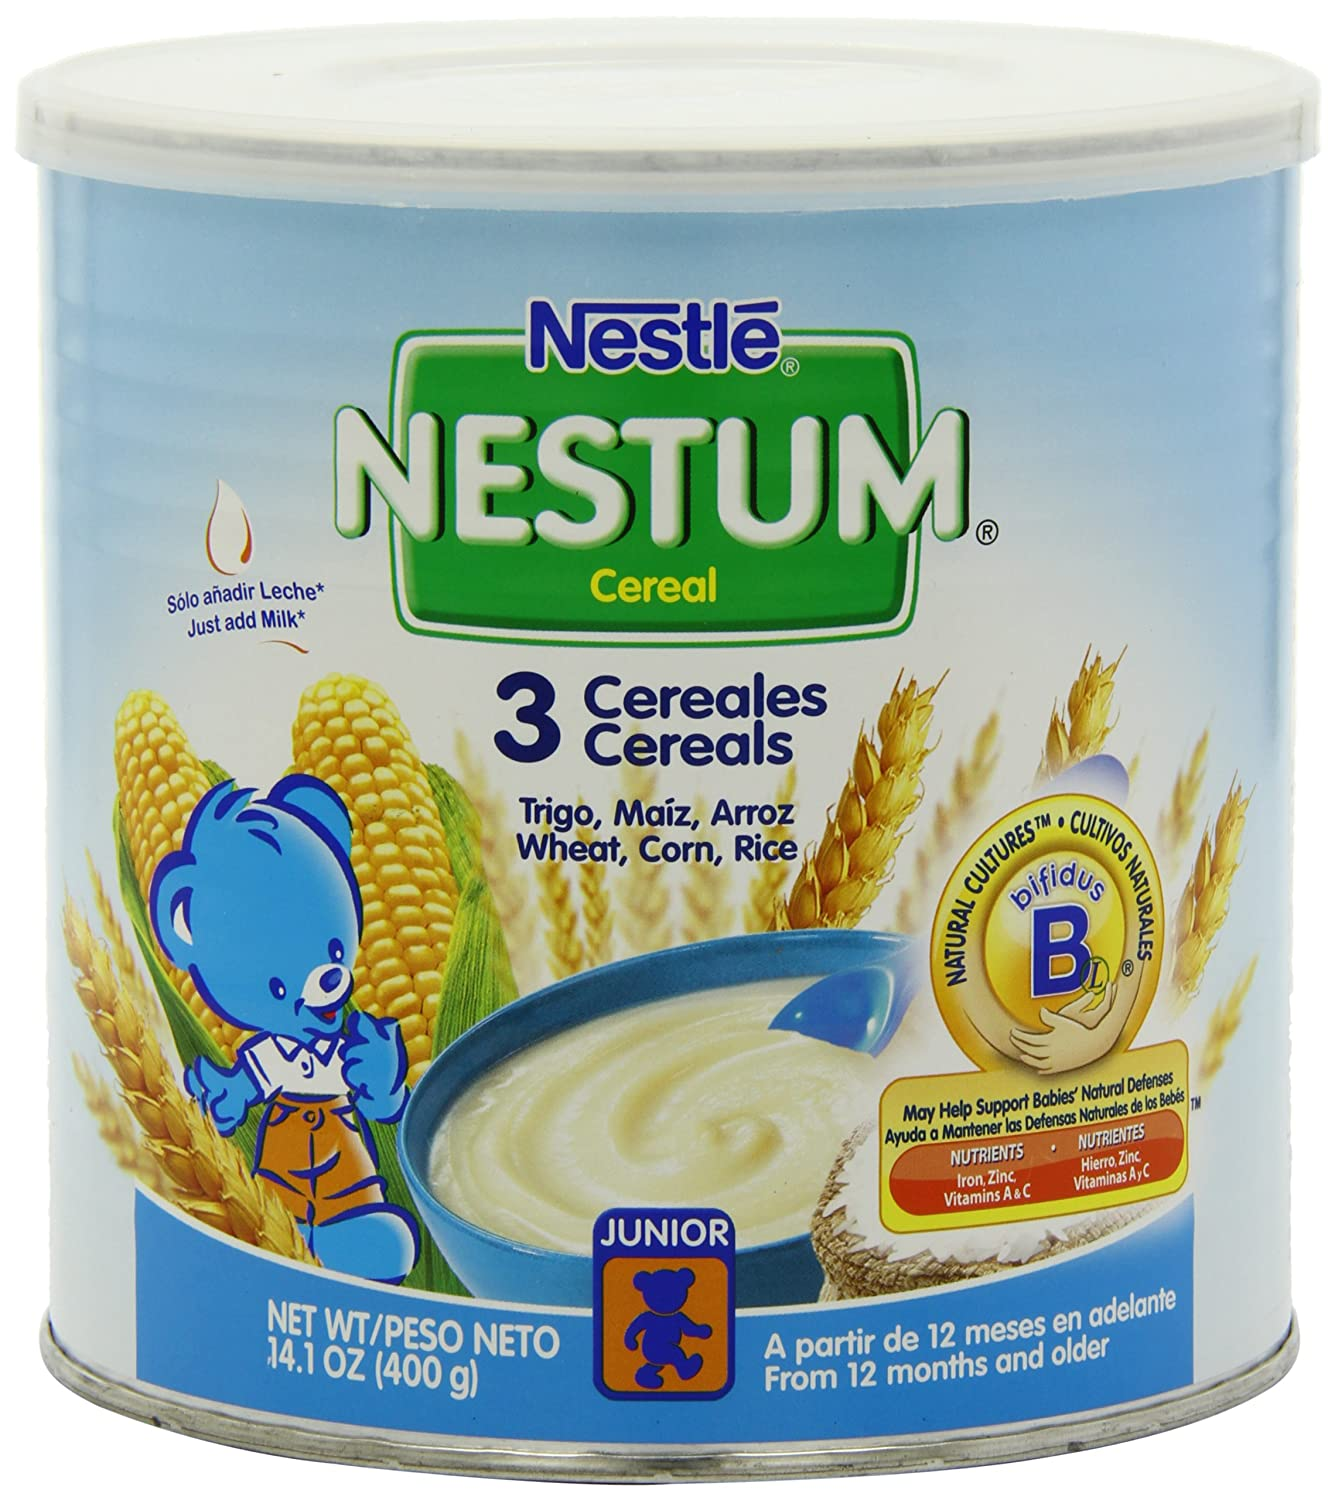 Nestle Nestum 3 Cereals, 14.1-Ounce (Pack of 6) Gerber Baby Cereal Nes-1185